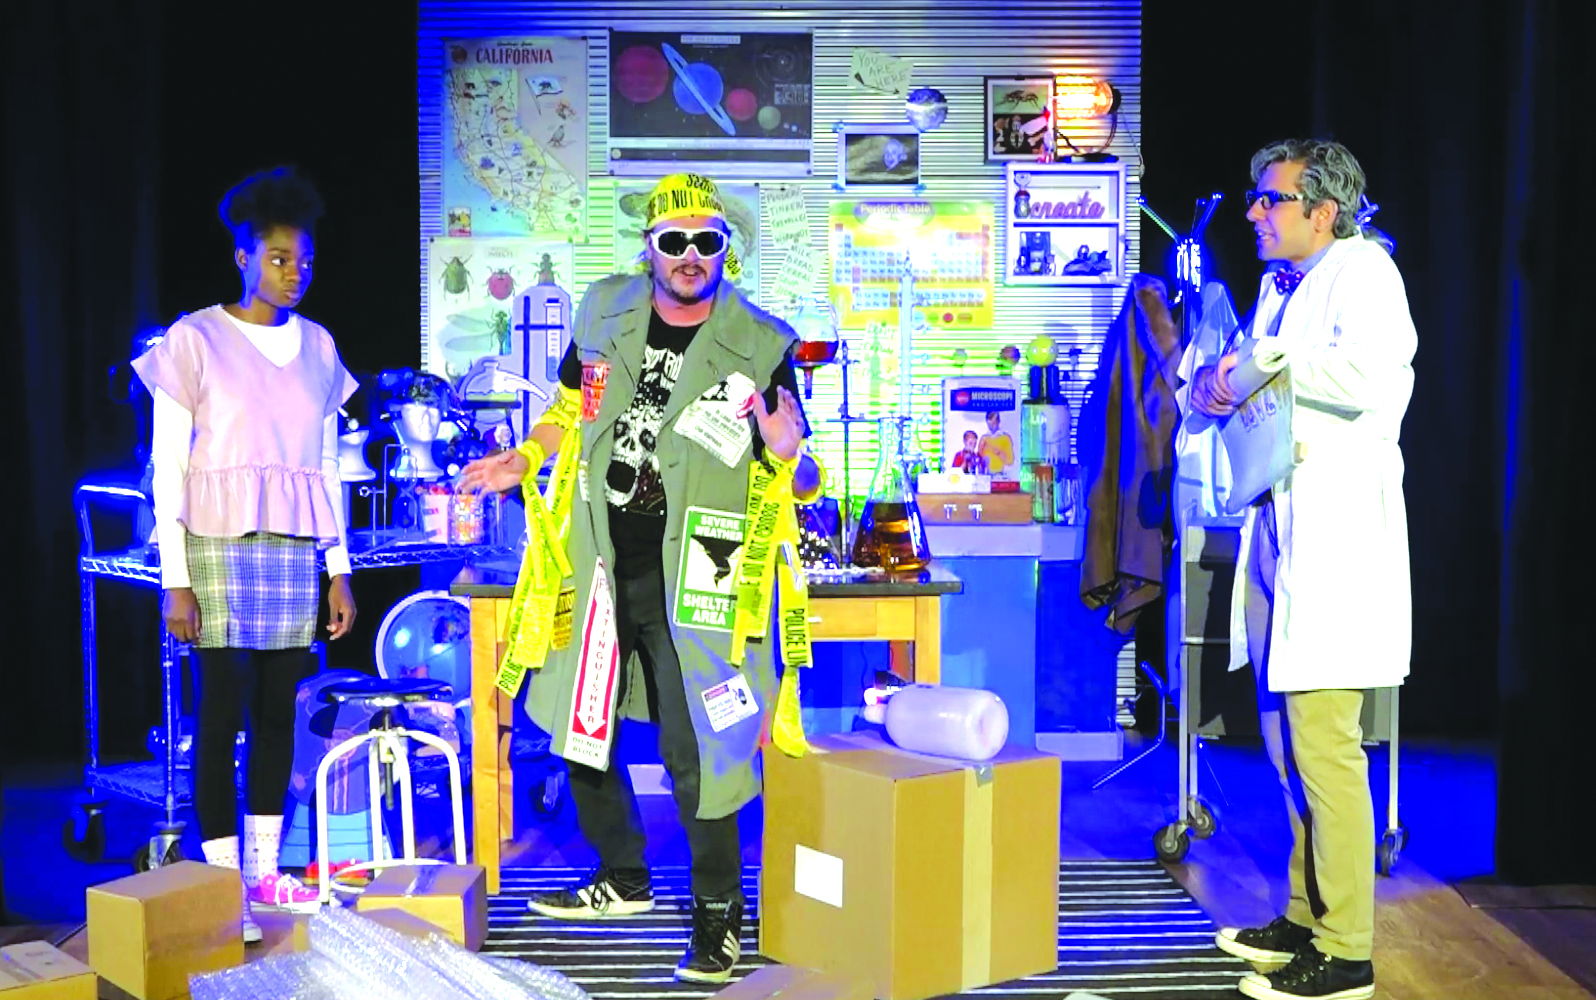 Penelope Planner and Dr. Scientist encounter Calamity Dwayne, a living disaster waiting to happen!